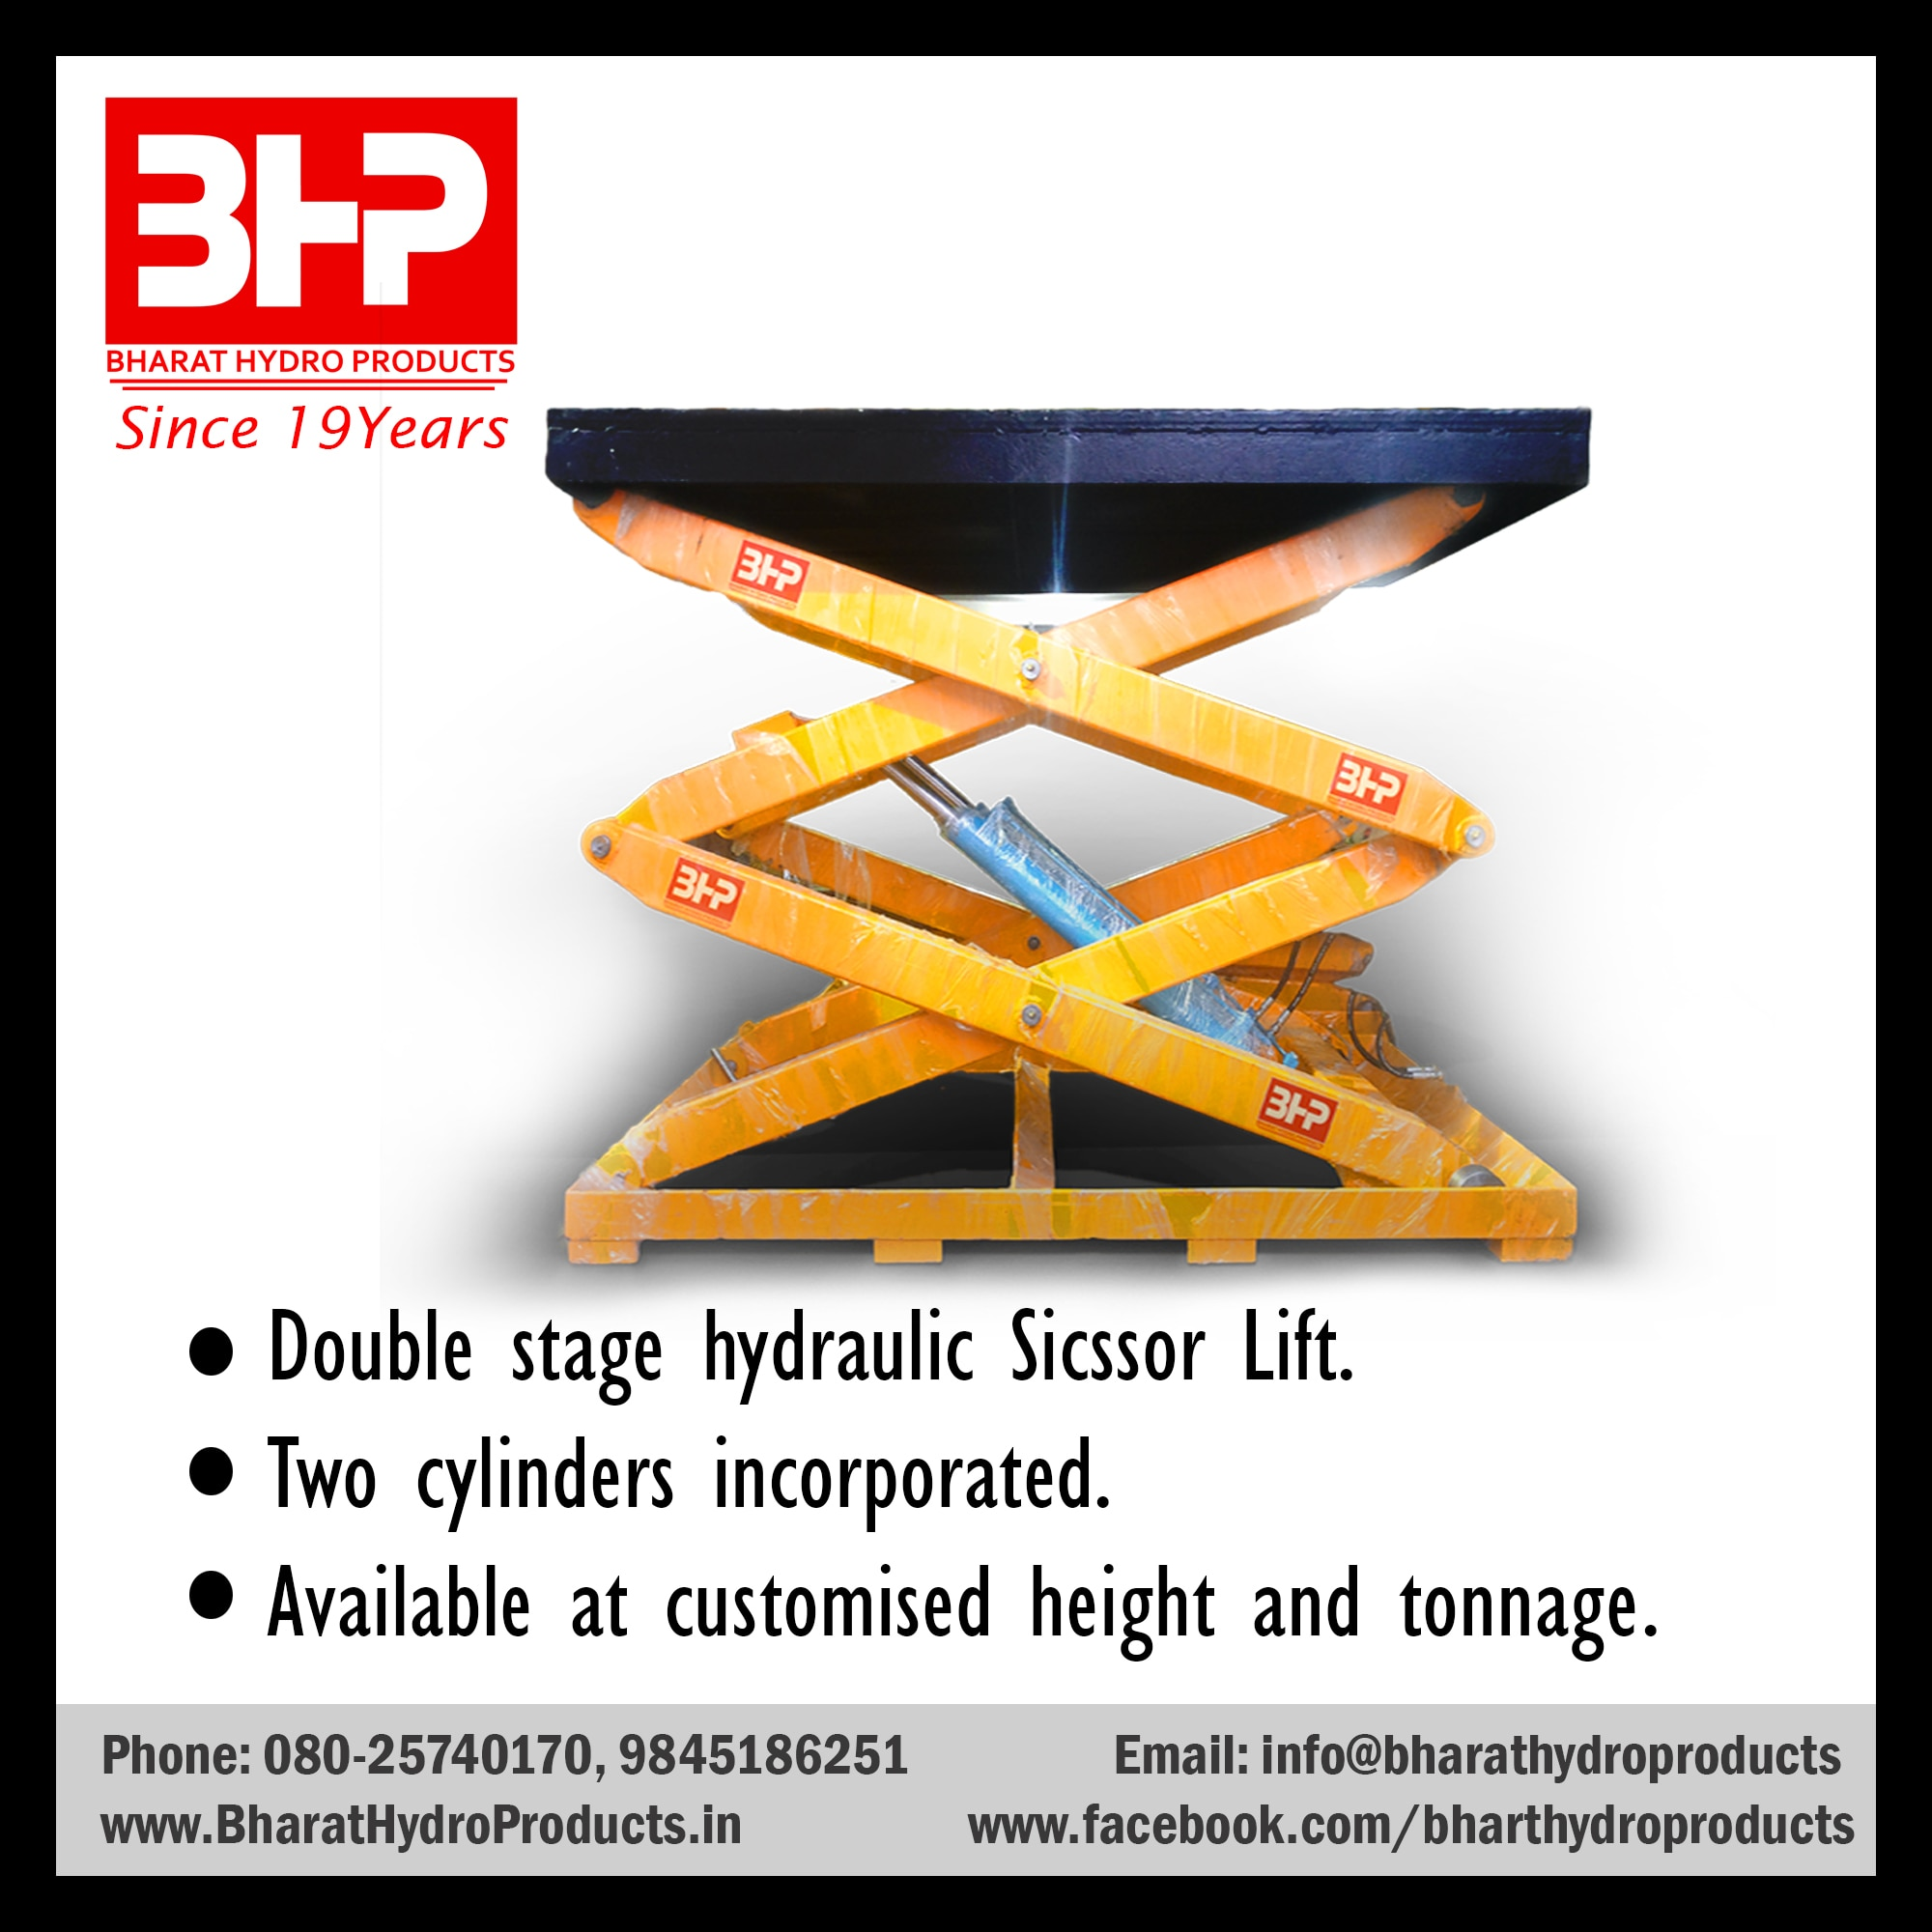 BHP's core hydraulic products manufactured in Bangalore are:   Hydraulic Scissor lift manufactured in Bangalore Hydraulic scissors lifts are one of the material handling equipments.                                                         For reference purpose you will find it in  • Car service centers • Bike service centers • Good carriers Hydraulic Scissors lift or lifting platforms can be in mobile mode or in fixed mode as per your requirement it can be customized. BHP is has been successful in designing scissor lifts or lifting platform  capable of lifting very heavy objects to the desired height.  #Hydraulic #scissorlift #lift #Liftingplatform  #Manufacturers #Bangalore #Customized